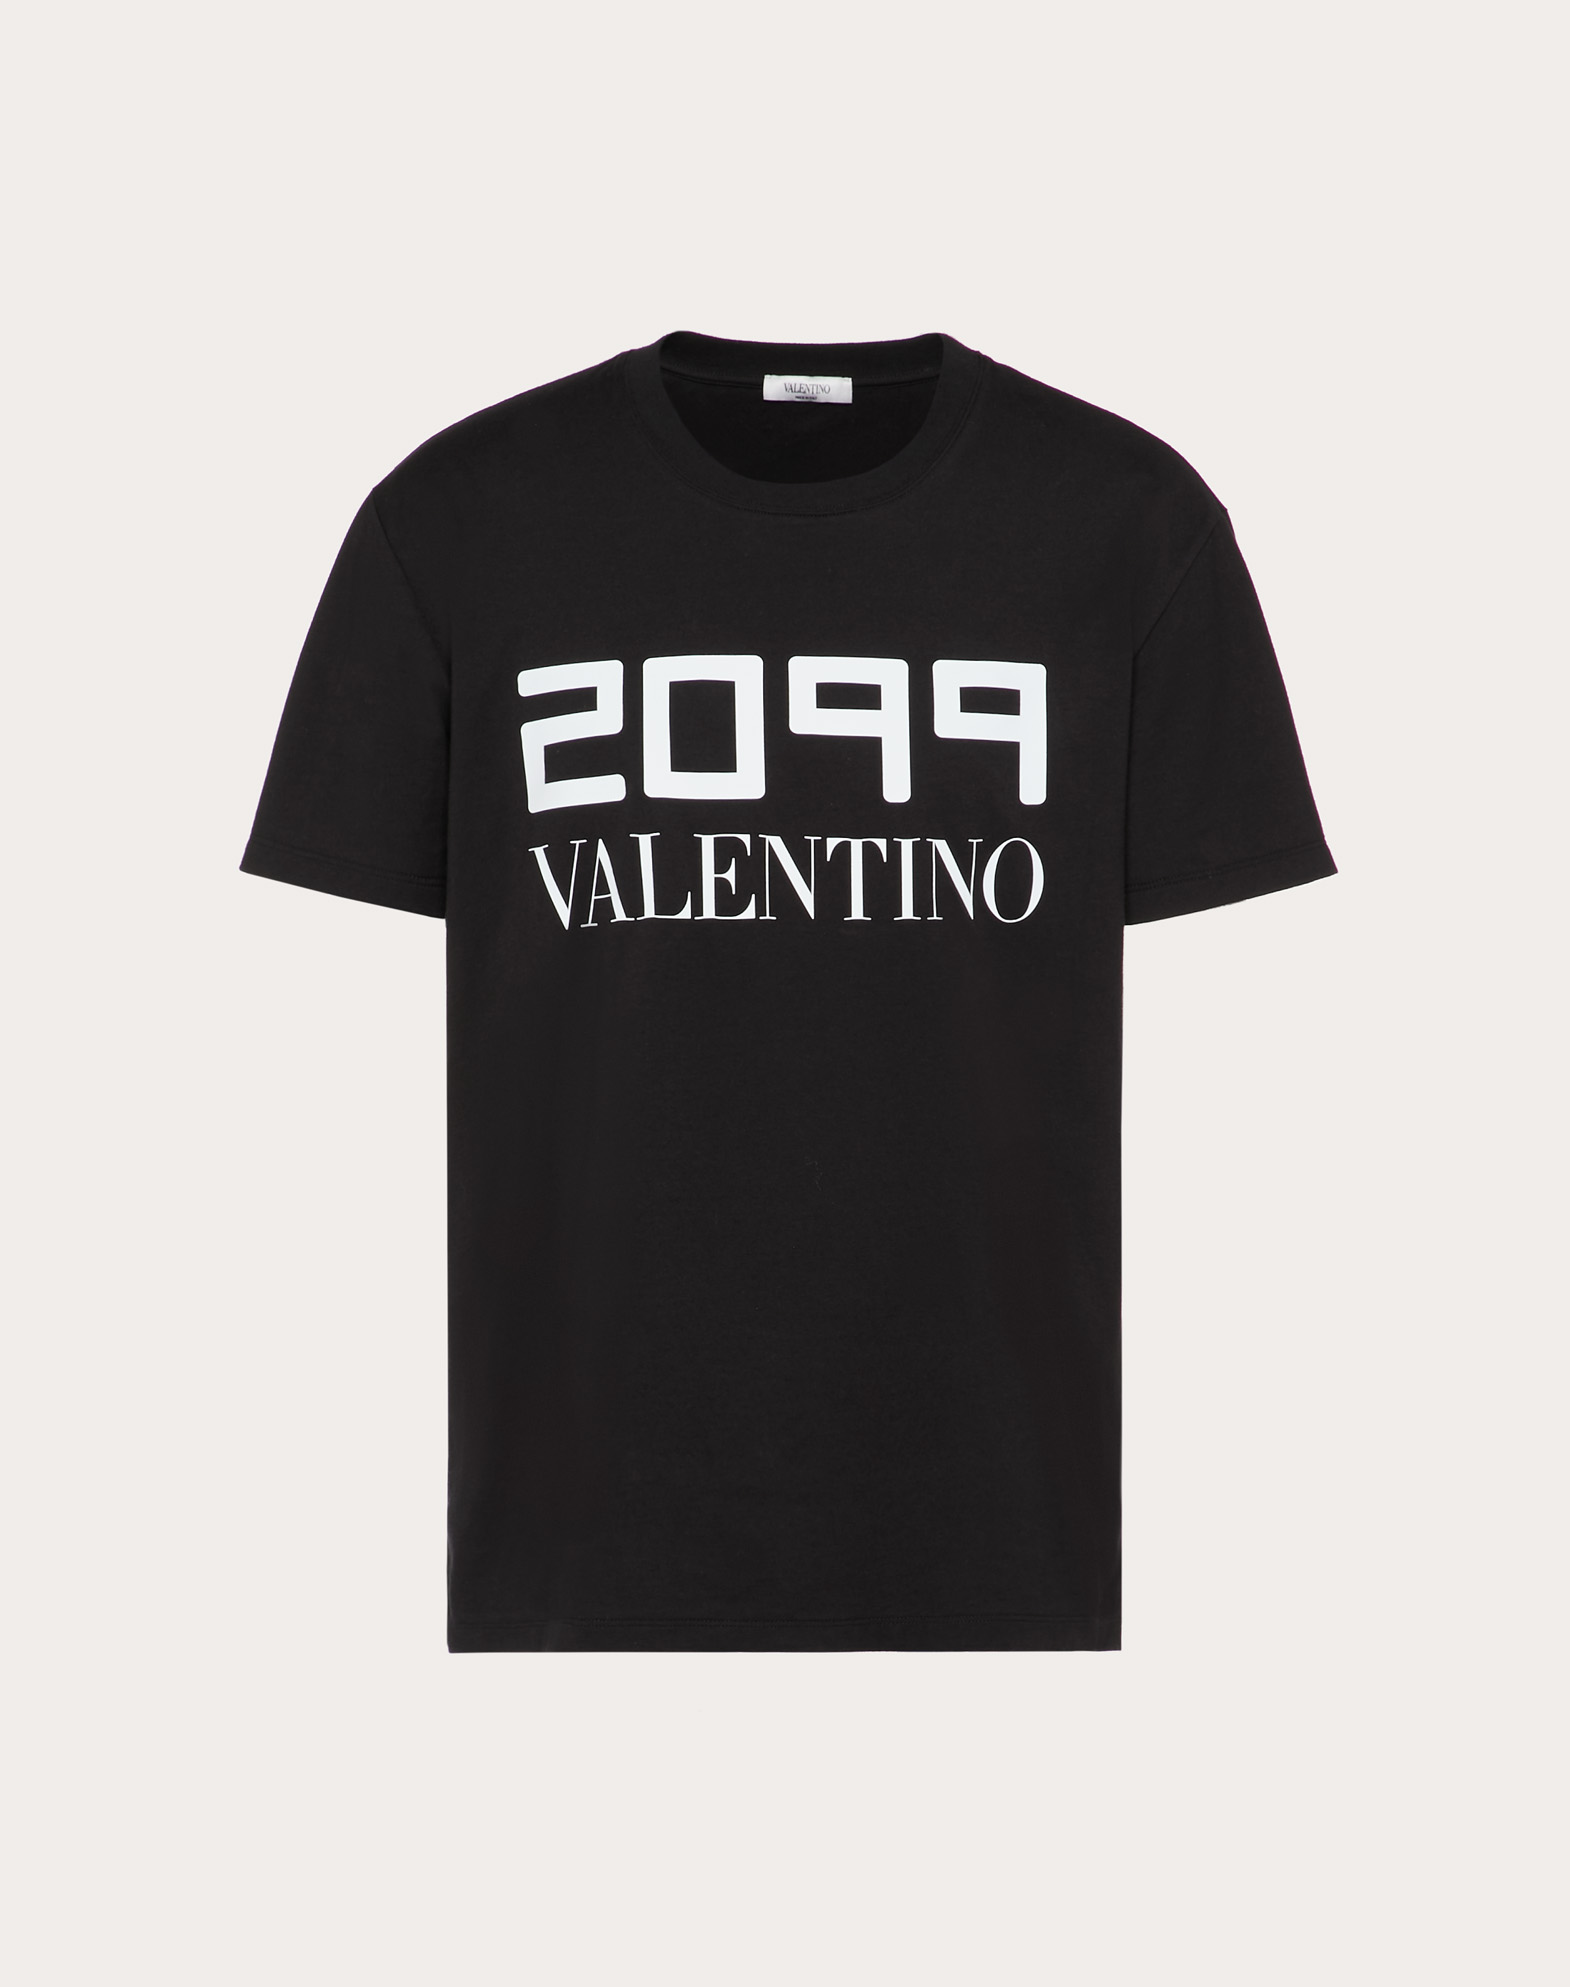 T-SHIRT WITH 2099 VALENTINO PRINT